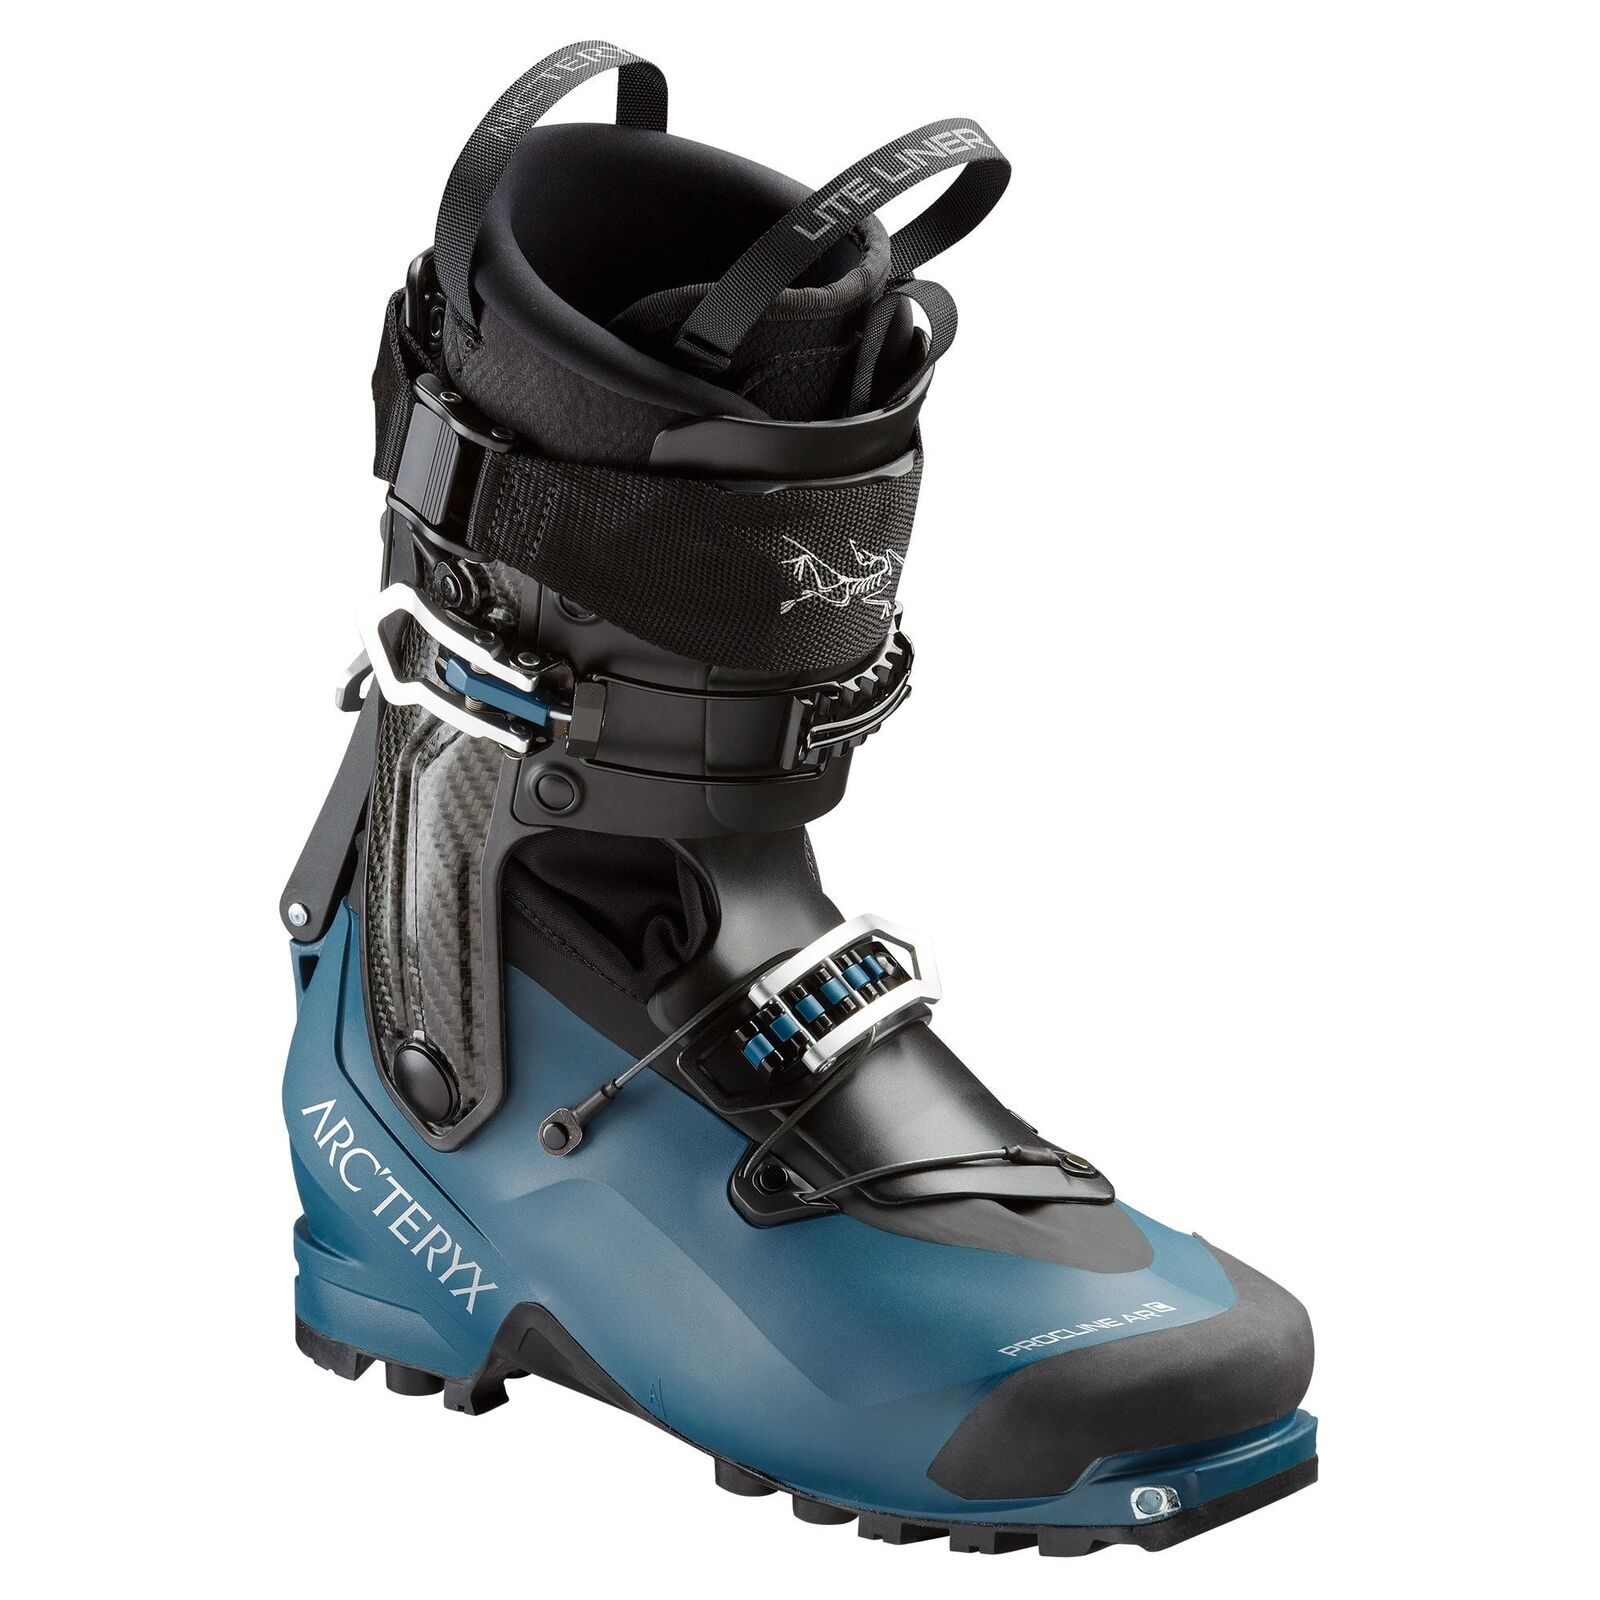 Arc'teryx Procline AR Carbon  Men's Ski Touring Boot  designer online